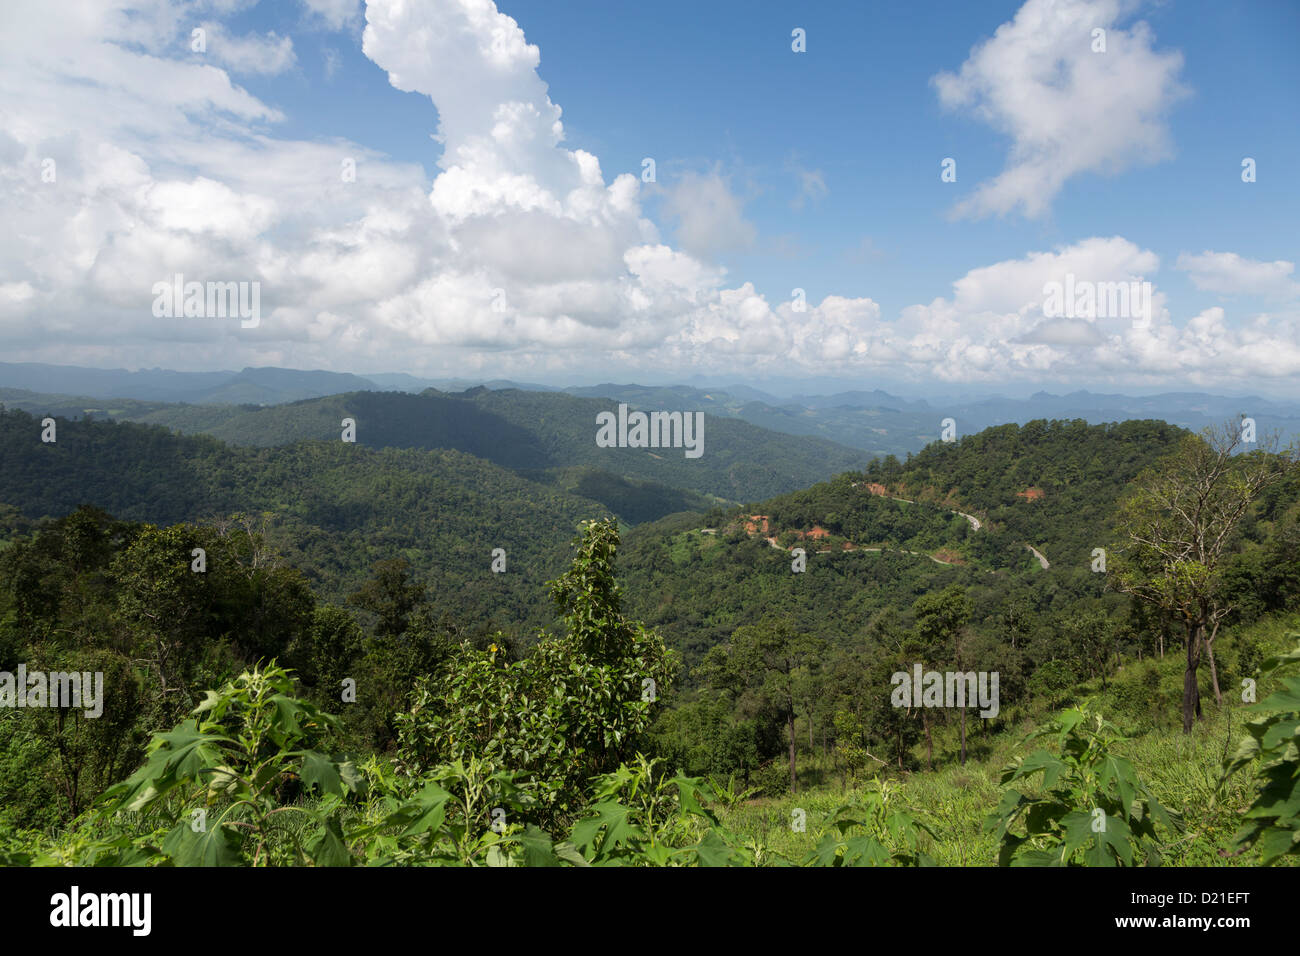 Kiew Lom viewpoint on the road from Pai to Mae Hong Son, Chiang Mai province, north Thailand - Stock Image